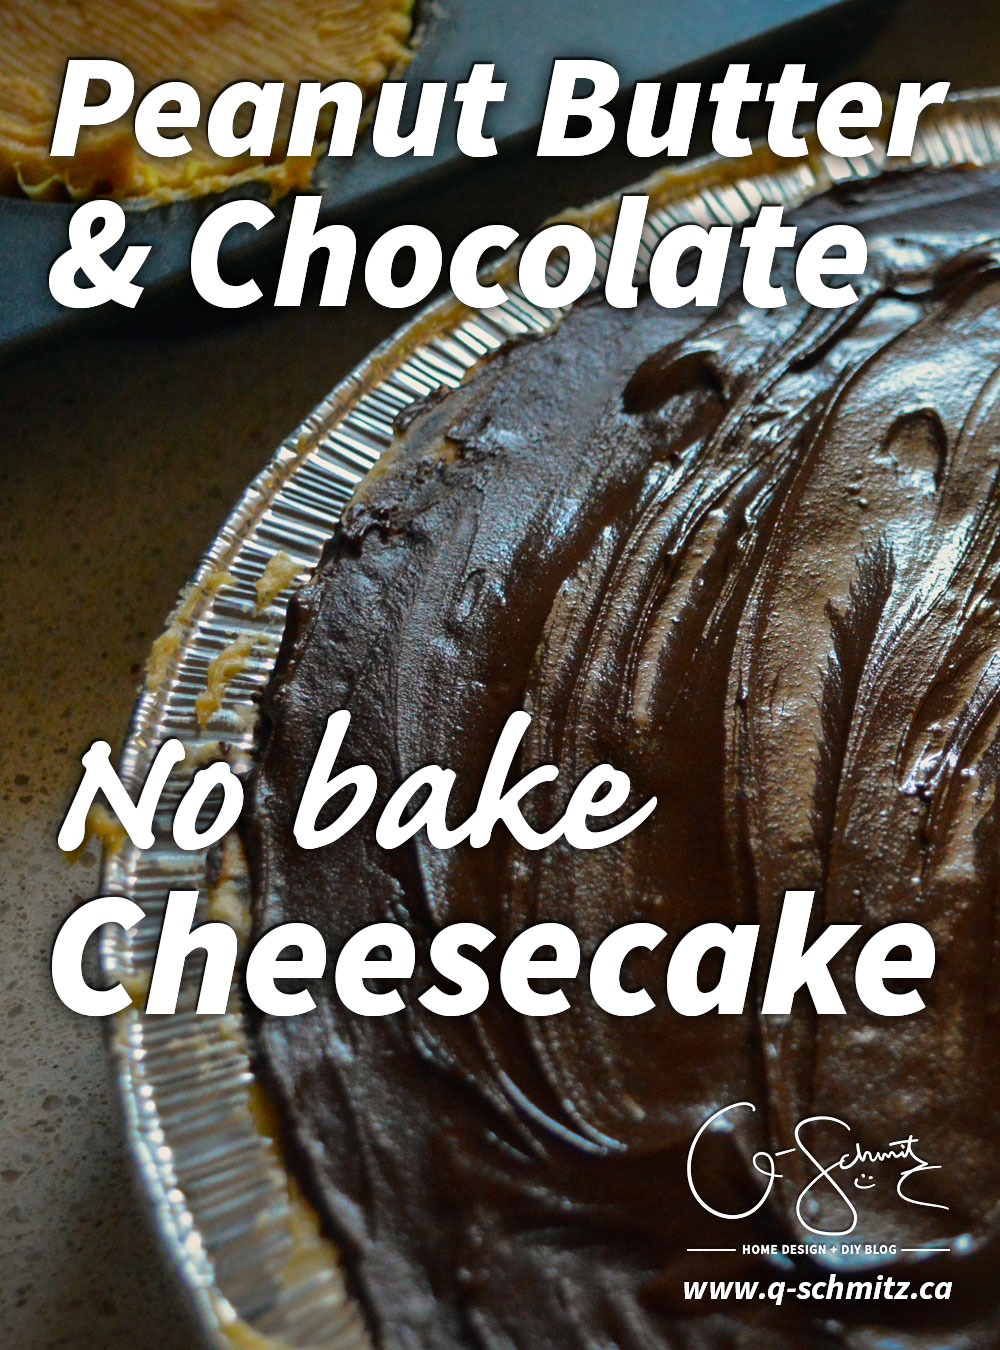 Have you ever made a no bake cheesecake before? What about a peanut butter version? Modelled after a jumbo Reese Cup, I just made this delicious peanut butter and chocolate no bake cheesecake and would love to share the details with you :)